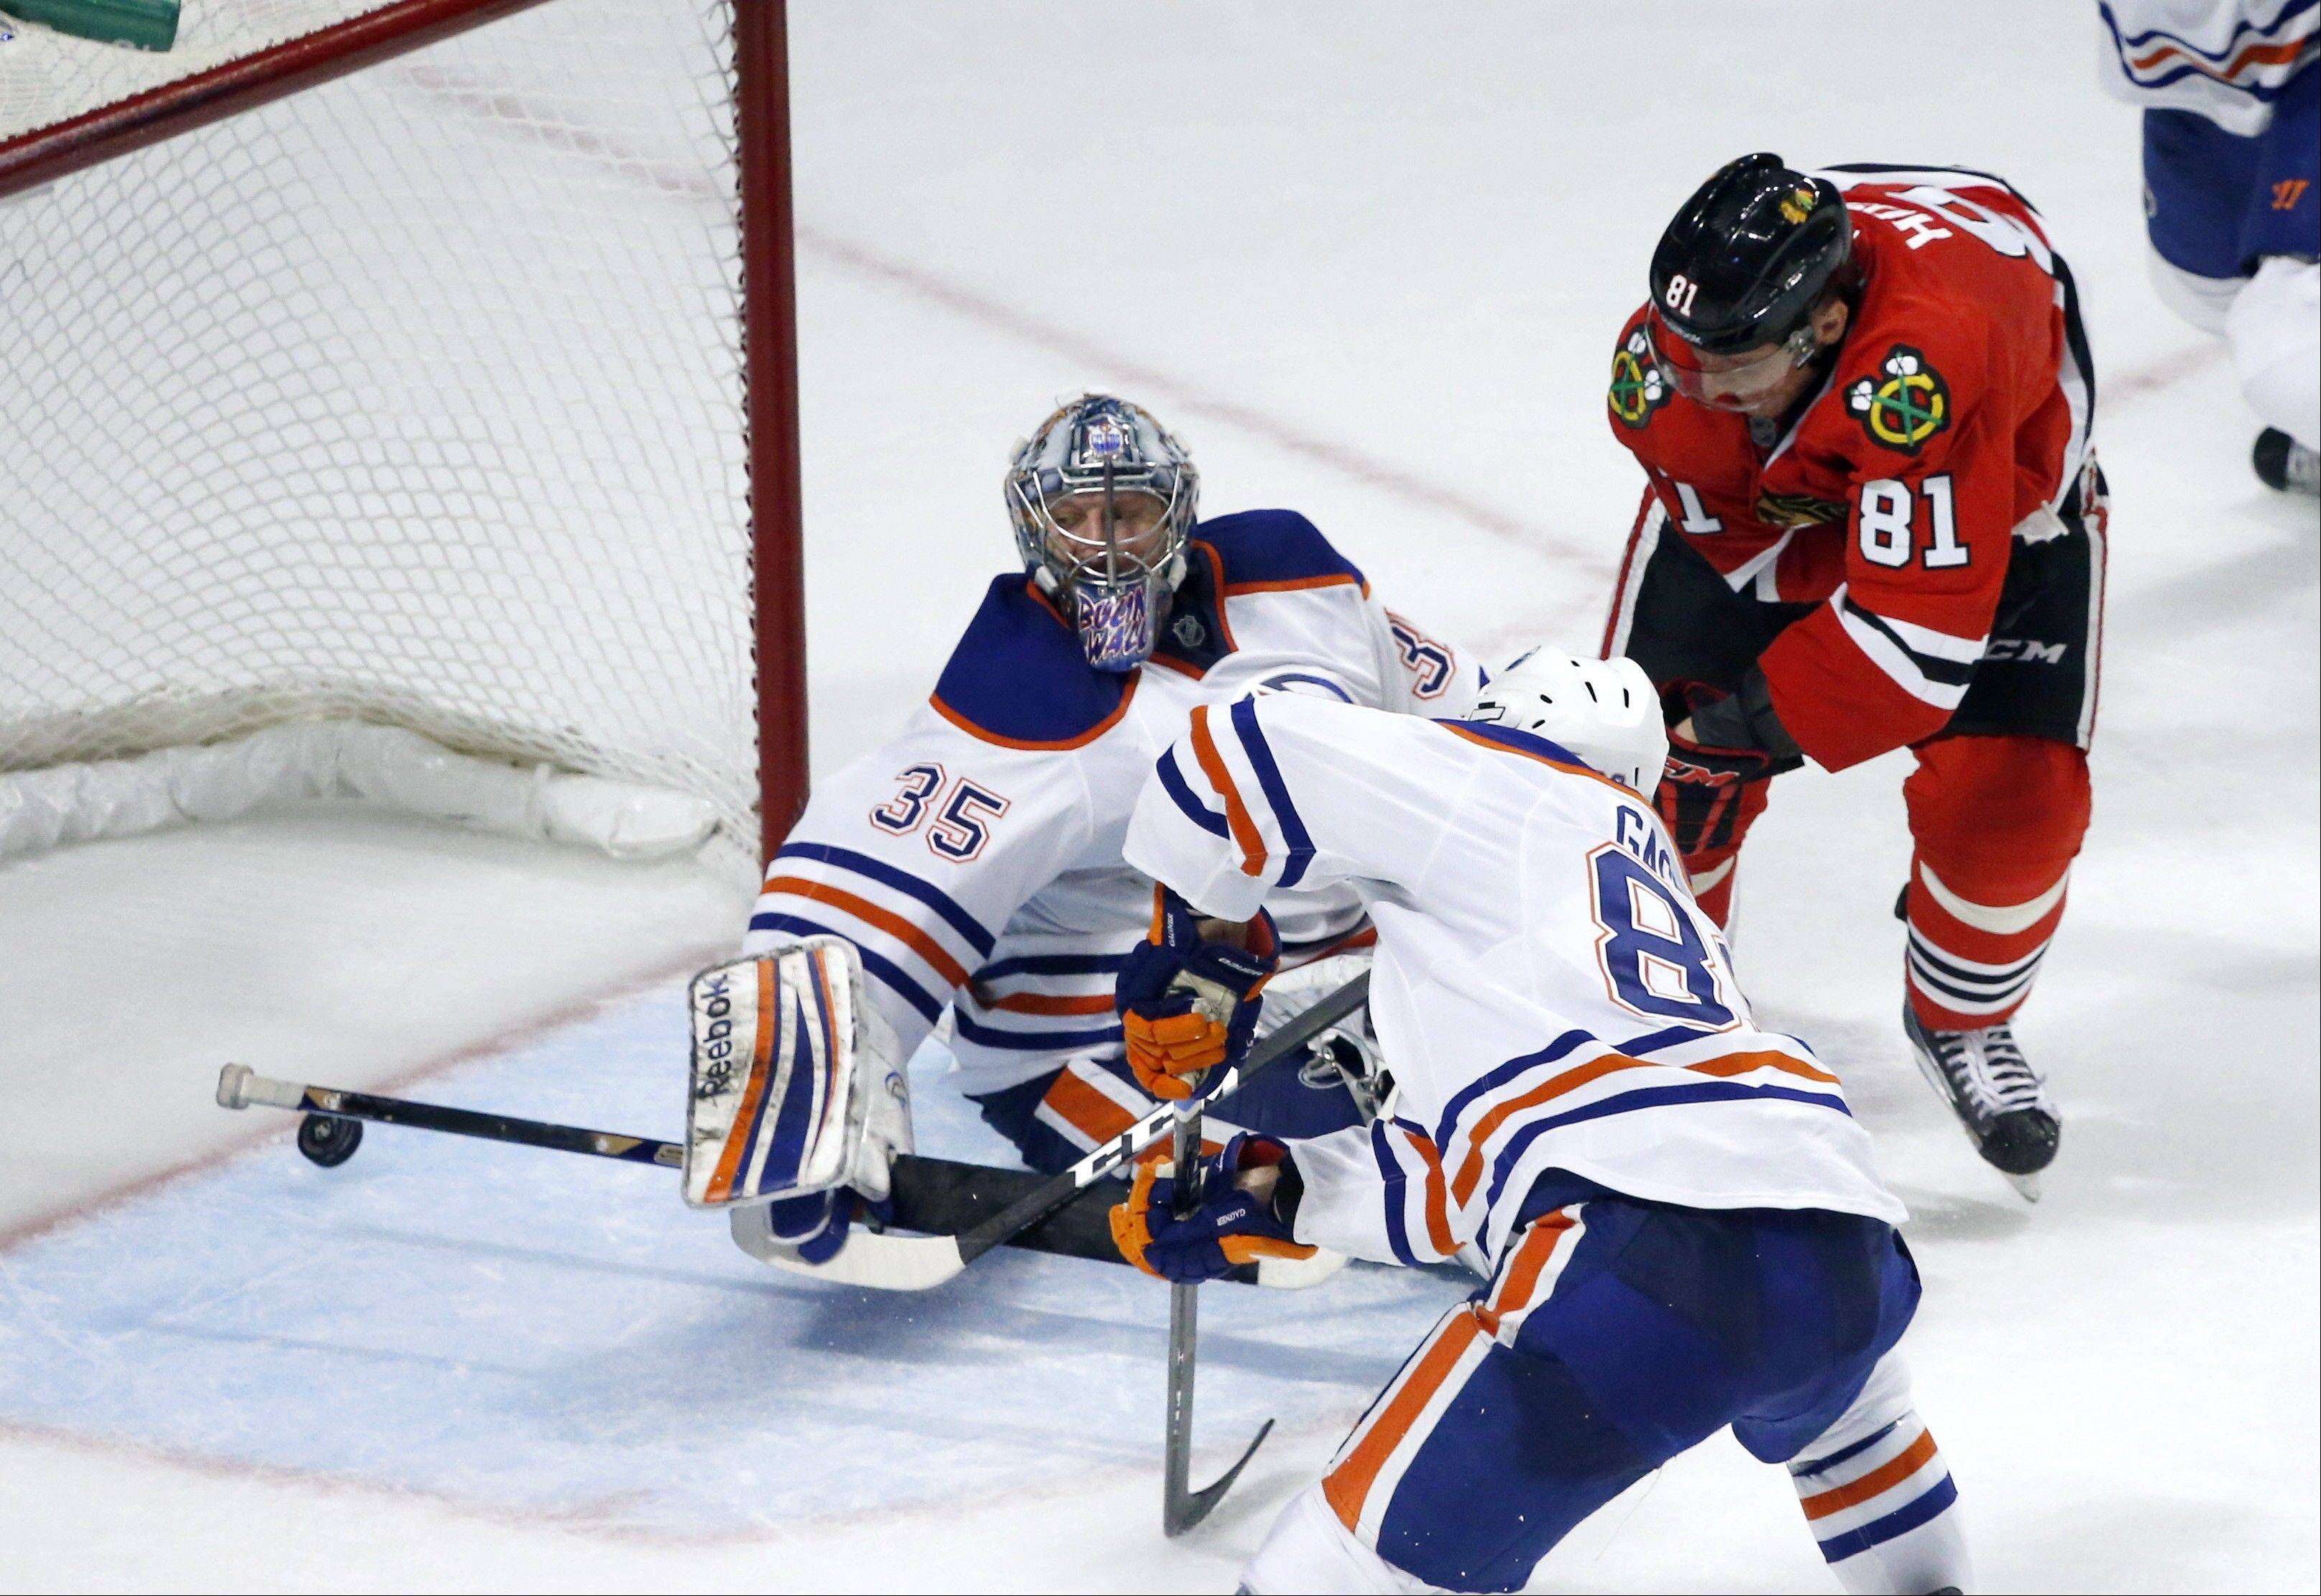 Chicago Blackhawks right wing Marian Hossa shoots the winning goal past Edmonton Oilers goalie Nikolai Khabibulin and center Sam Gagner during overtime.